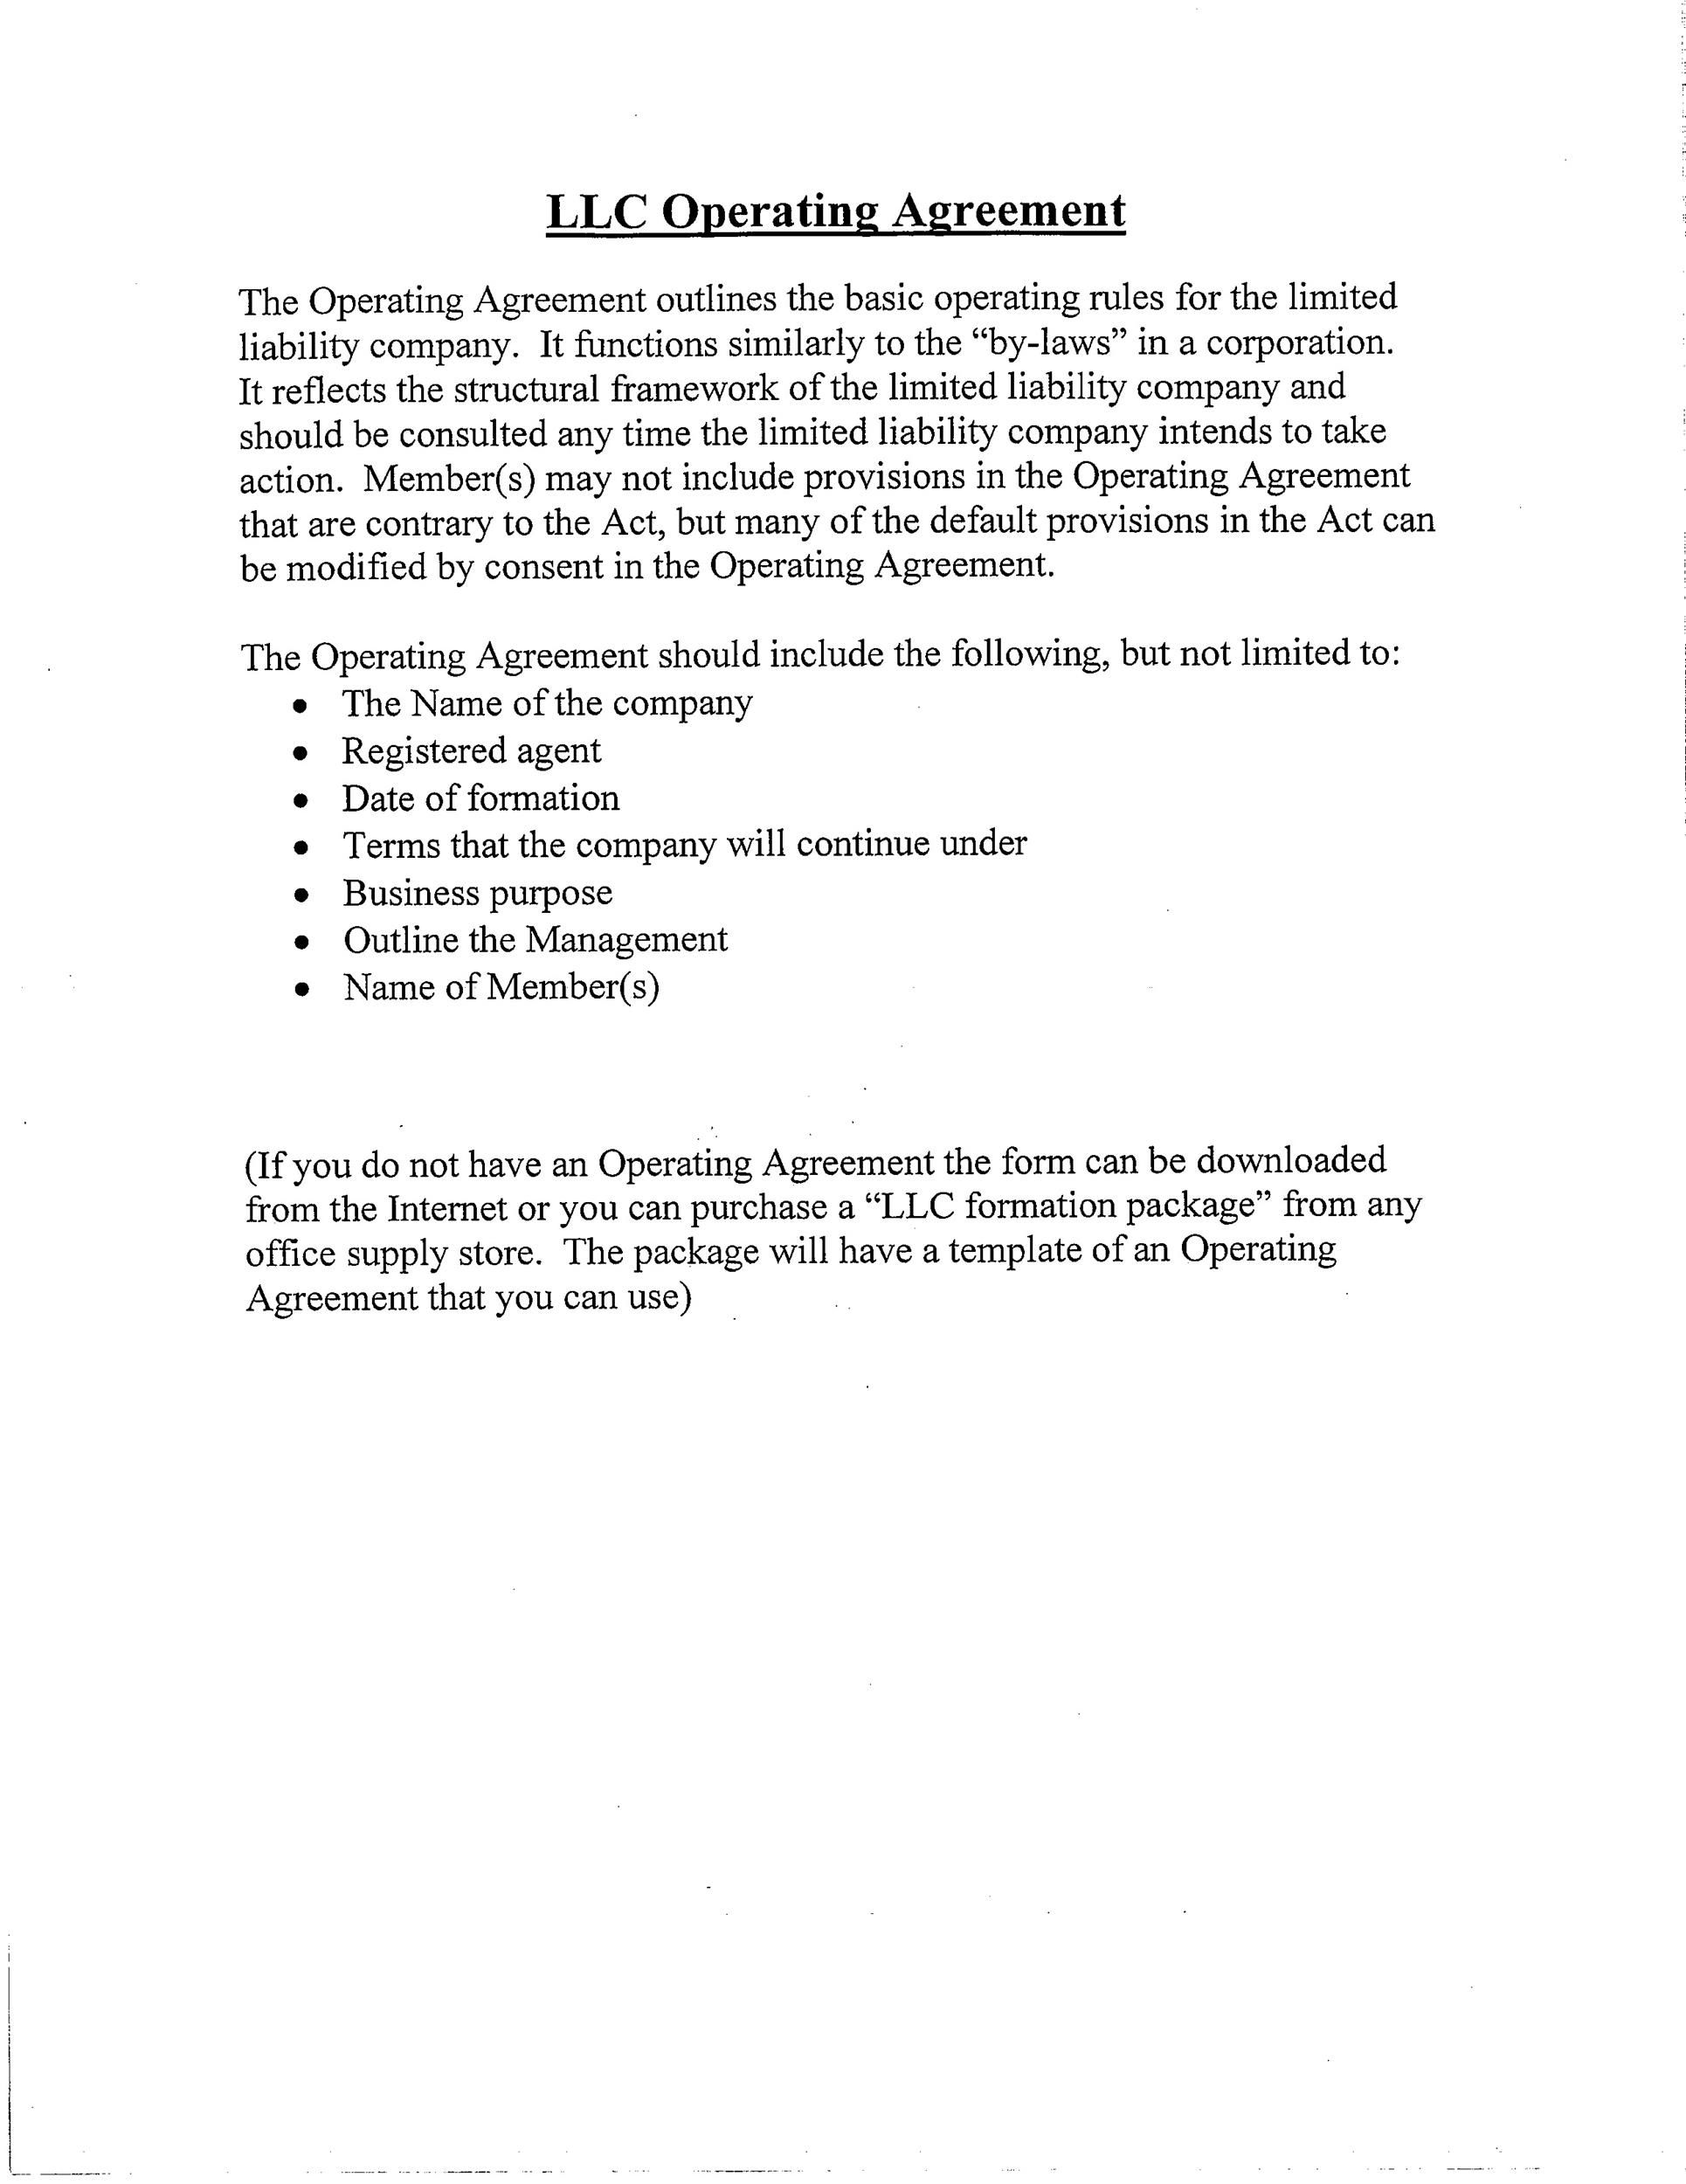 008 Striking Buy Sell Agreement Llc Template Free Picture Full